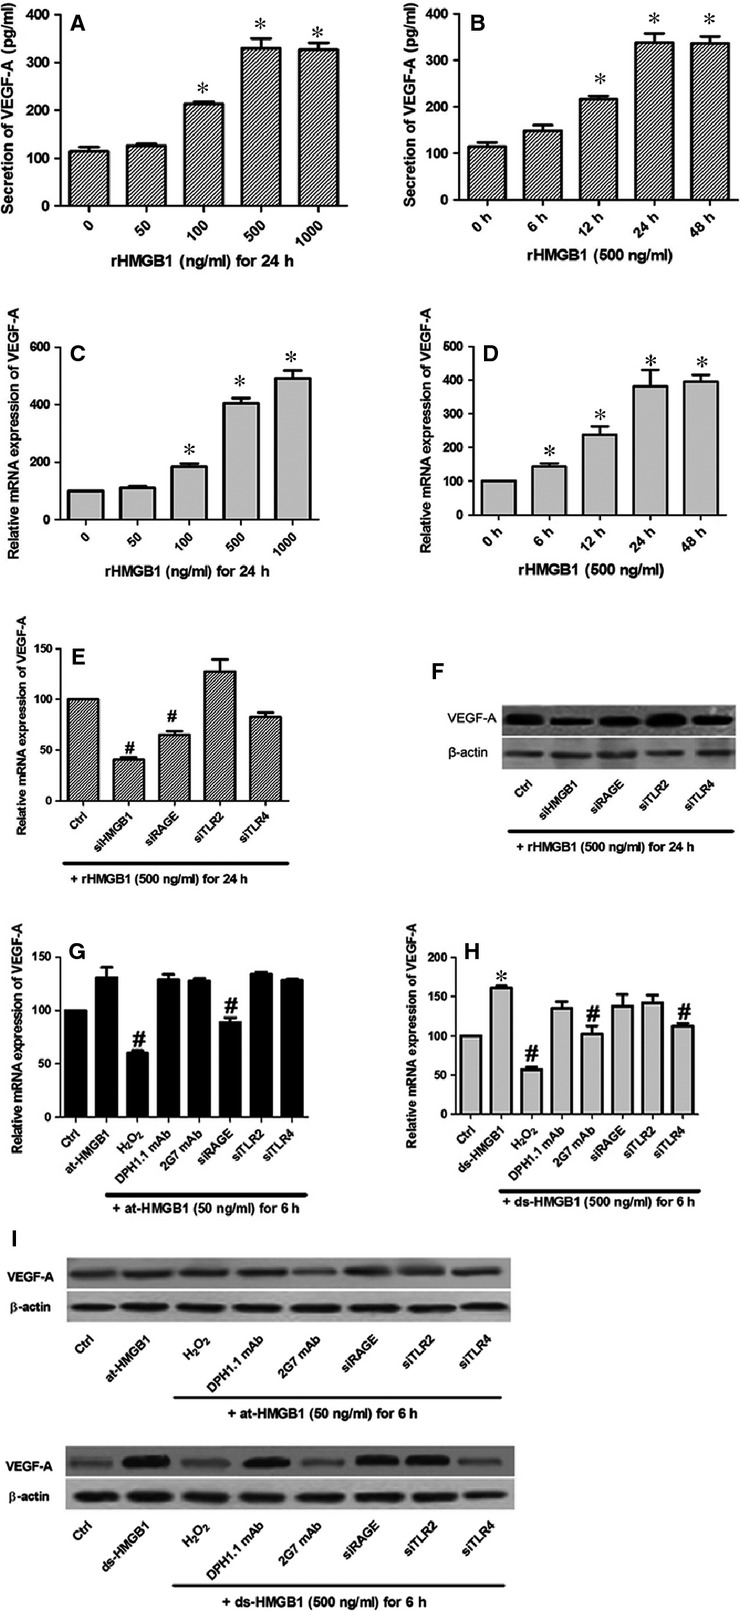 HMGB1, especially its disulfide-bonded form, could regulate the release of VEGF-A. Quantities of VEGF-A expressed after stimulation of HUVECs with increasing concentrations of rHMGB1 (A and C) or duration of stimulation (B and D). (E) At mRNA level, VEGF-A expression was significantly reduced via siRNA inhibition of HMGB1 and RAGE. (F) At protein level, siRNA targeting HMGB1, RAGE and TLR4 had an obvious influence on VEGF-A secretion. (G) at-HMGB1 (50 ng/ml) slightly up-regulated VEGF-A expression ( P > 0.05), which was reversed by effects of H 2 O 2 and si-RAGE. (H) Oxidation and inhibition by 2G7 mAb (1 μg/ml) or si-TLR4 significantly down-regulated the VEGF-A expression induced by ds-HMGB1 (500 ng/ml). For terminally oxidation, at-HMGB1 or ds-HMGB1 was previously exposed to H 2 O 2 (50mM) for 1 hr. (I) The similar VEGF-A reduction by H 2 O 2 , 2G7 mAb or si-TLR4 was determined with Western blot, whereas there displayed no effect of at-HMGB1 or its associated inhibition. *Indicates a P